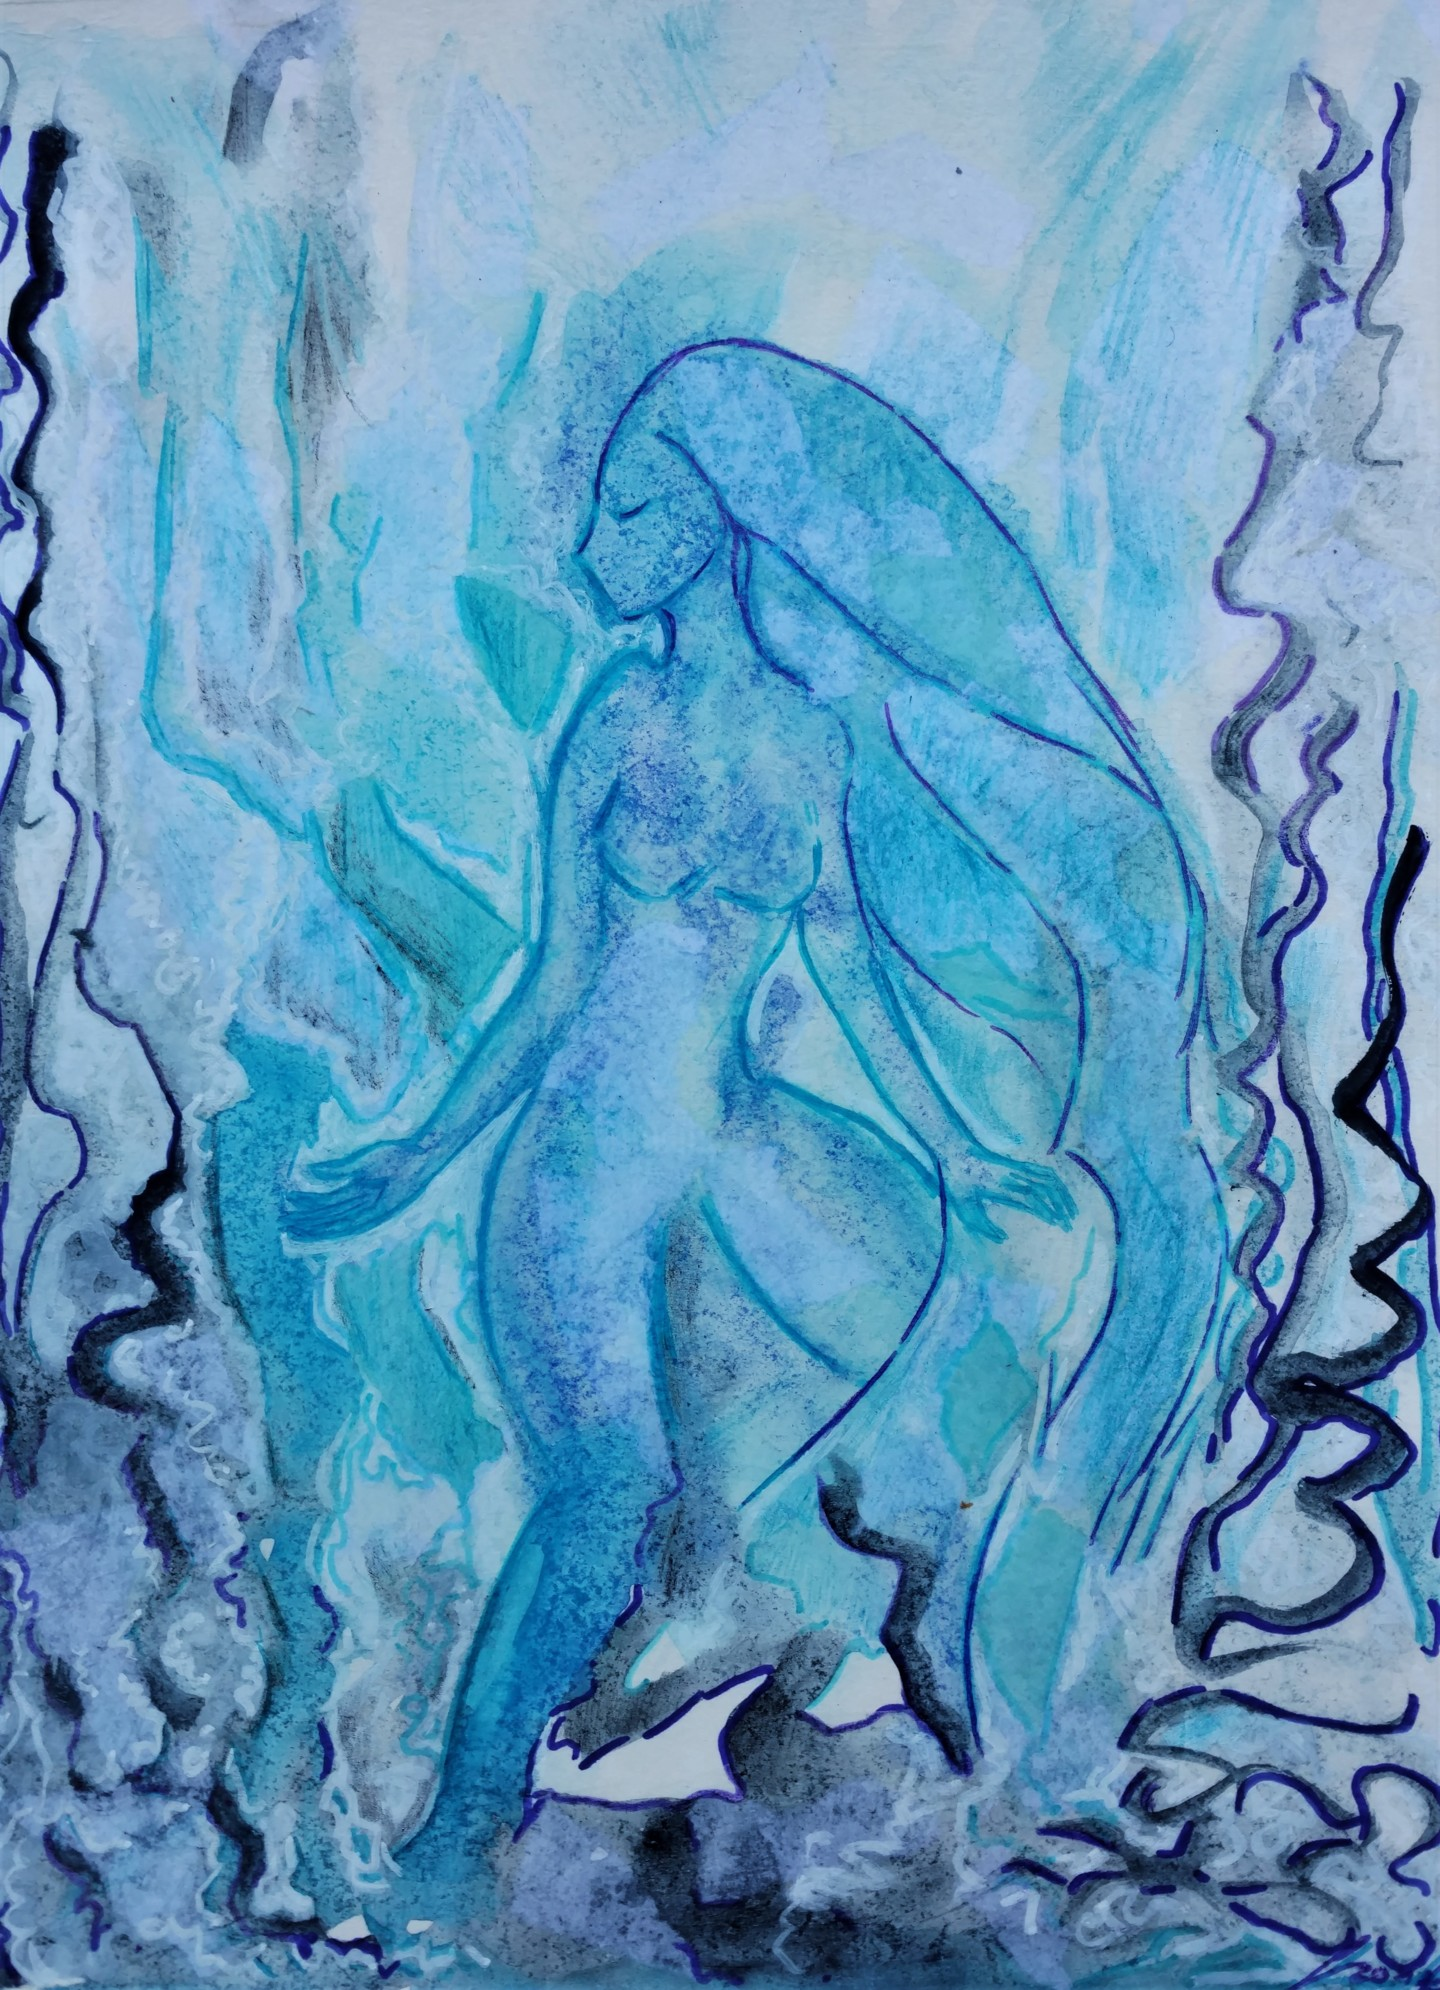 Gioia Albano - Ondine (or Wave Fairy)